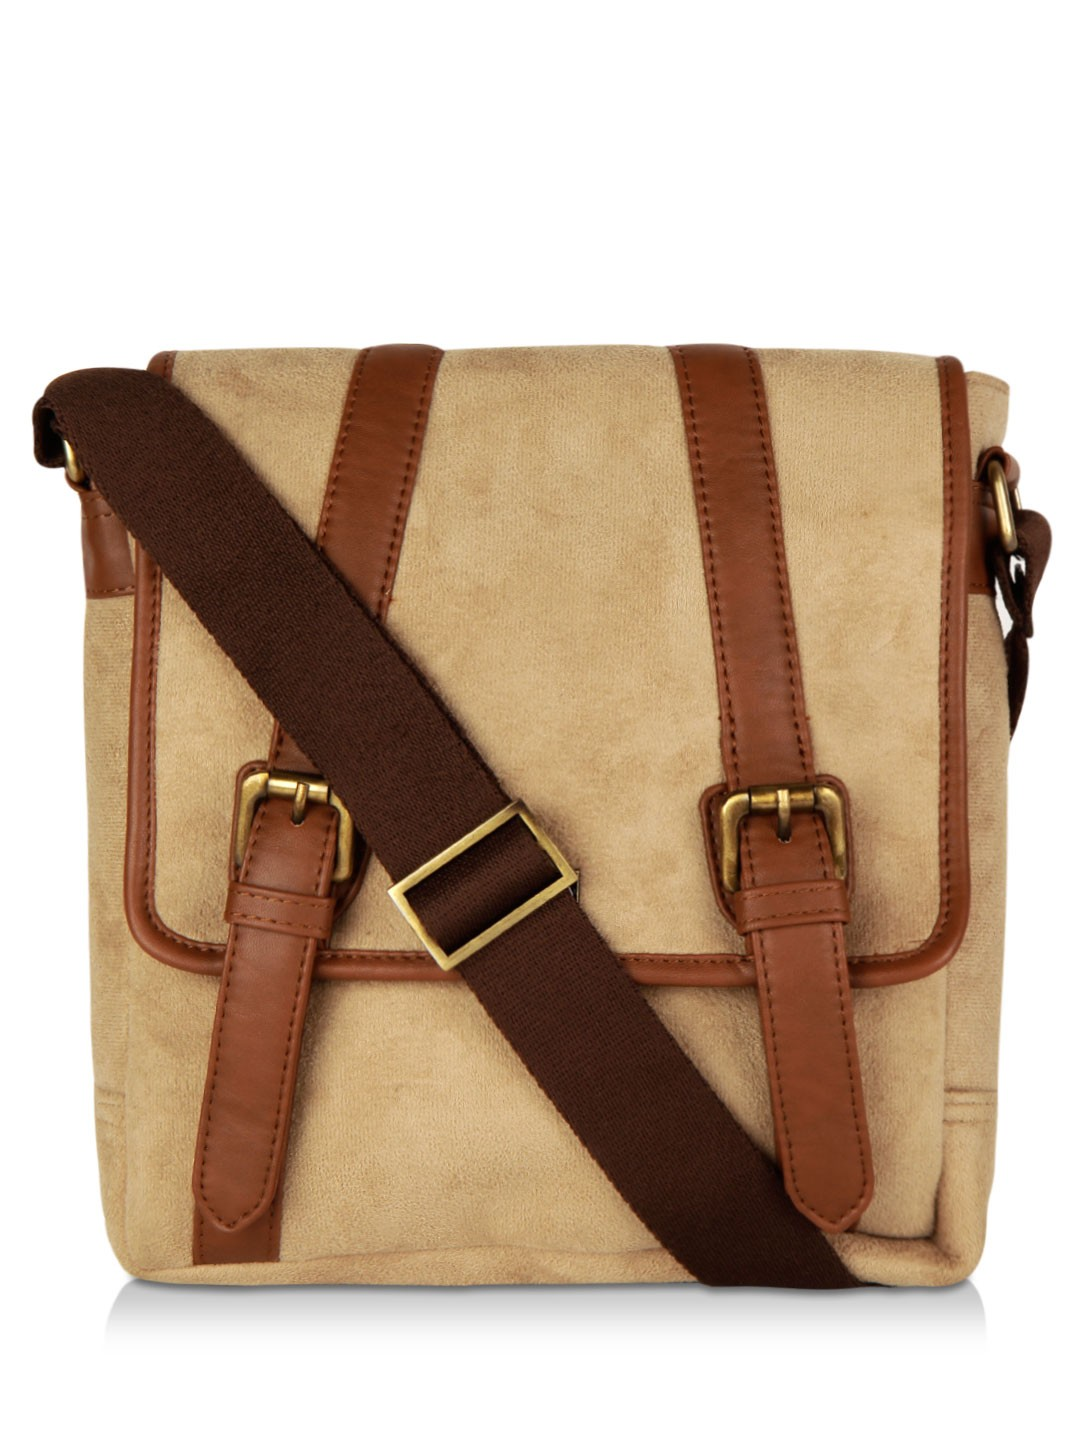 Buy ATORSE Sling Bag For Men - Men's Brown/White/Off-White Sling ...